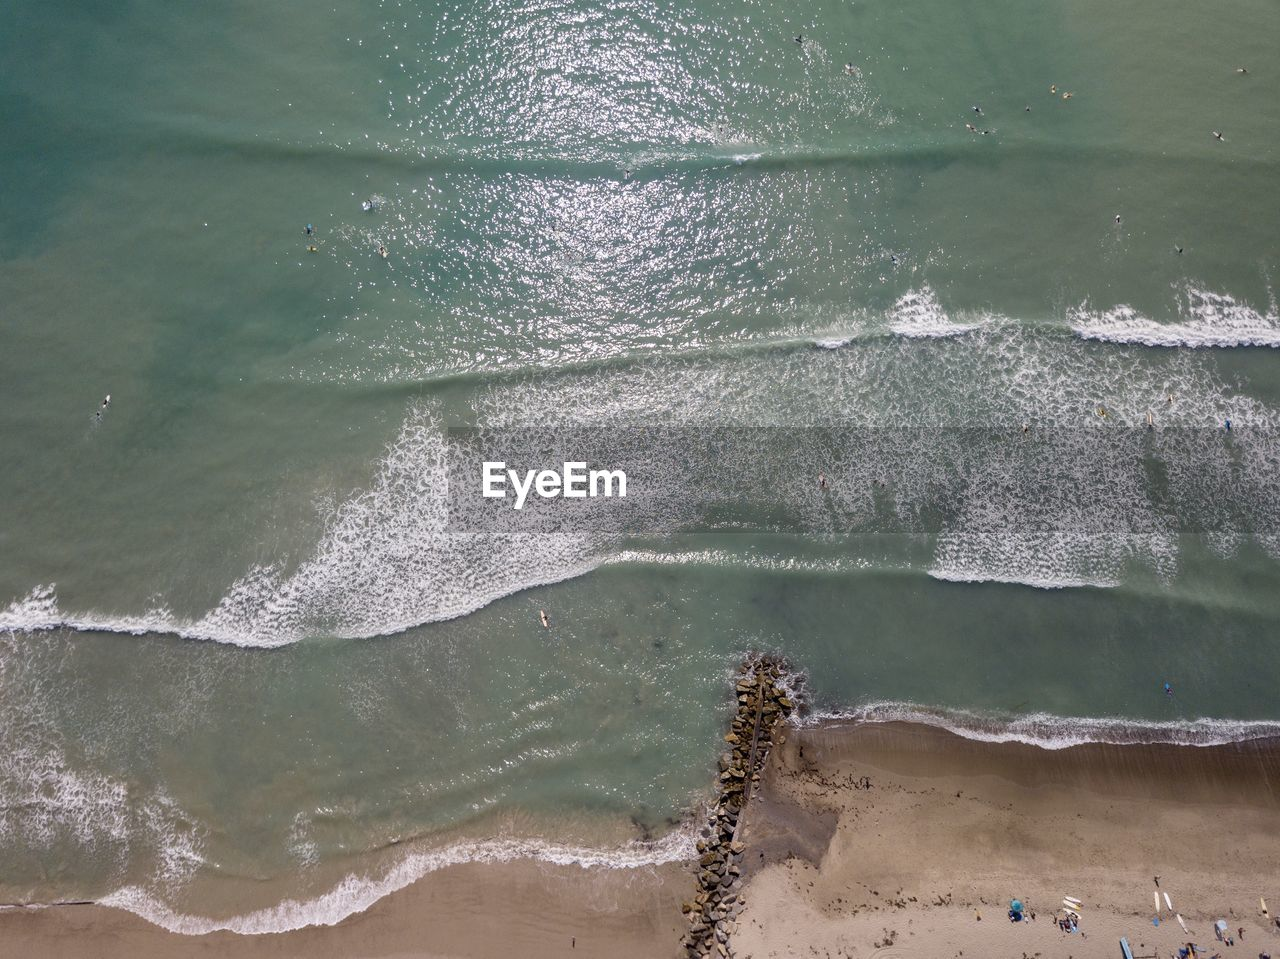 water, sea, beach, wave, land, aquatic sport, beauty in nature, sport, motion, nature, day, no people, high angle view, outdoors, scenics - nature, tranquility, sand, tranquil scene, power in nature